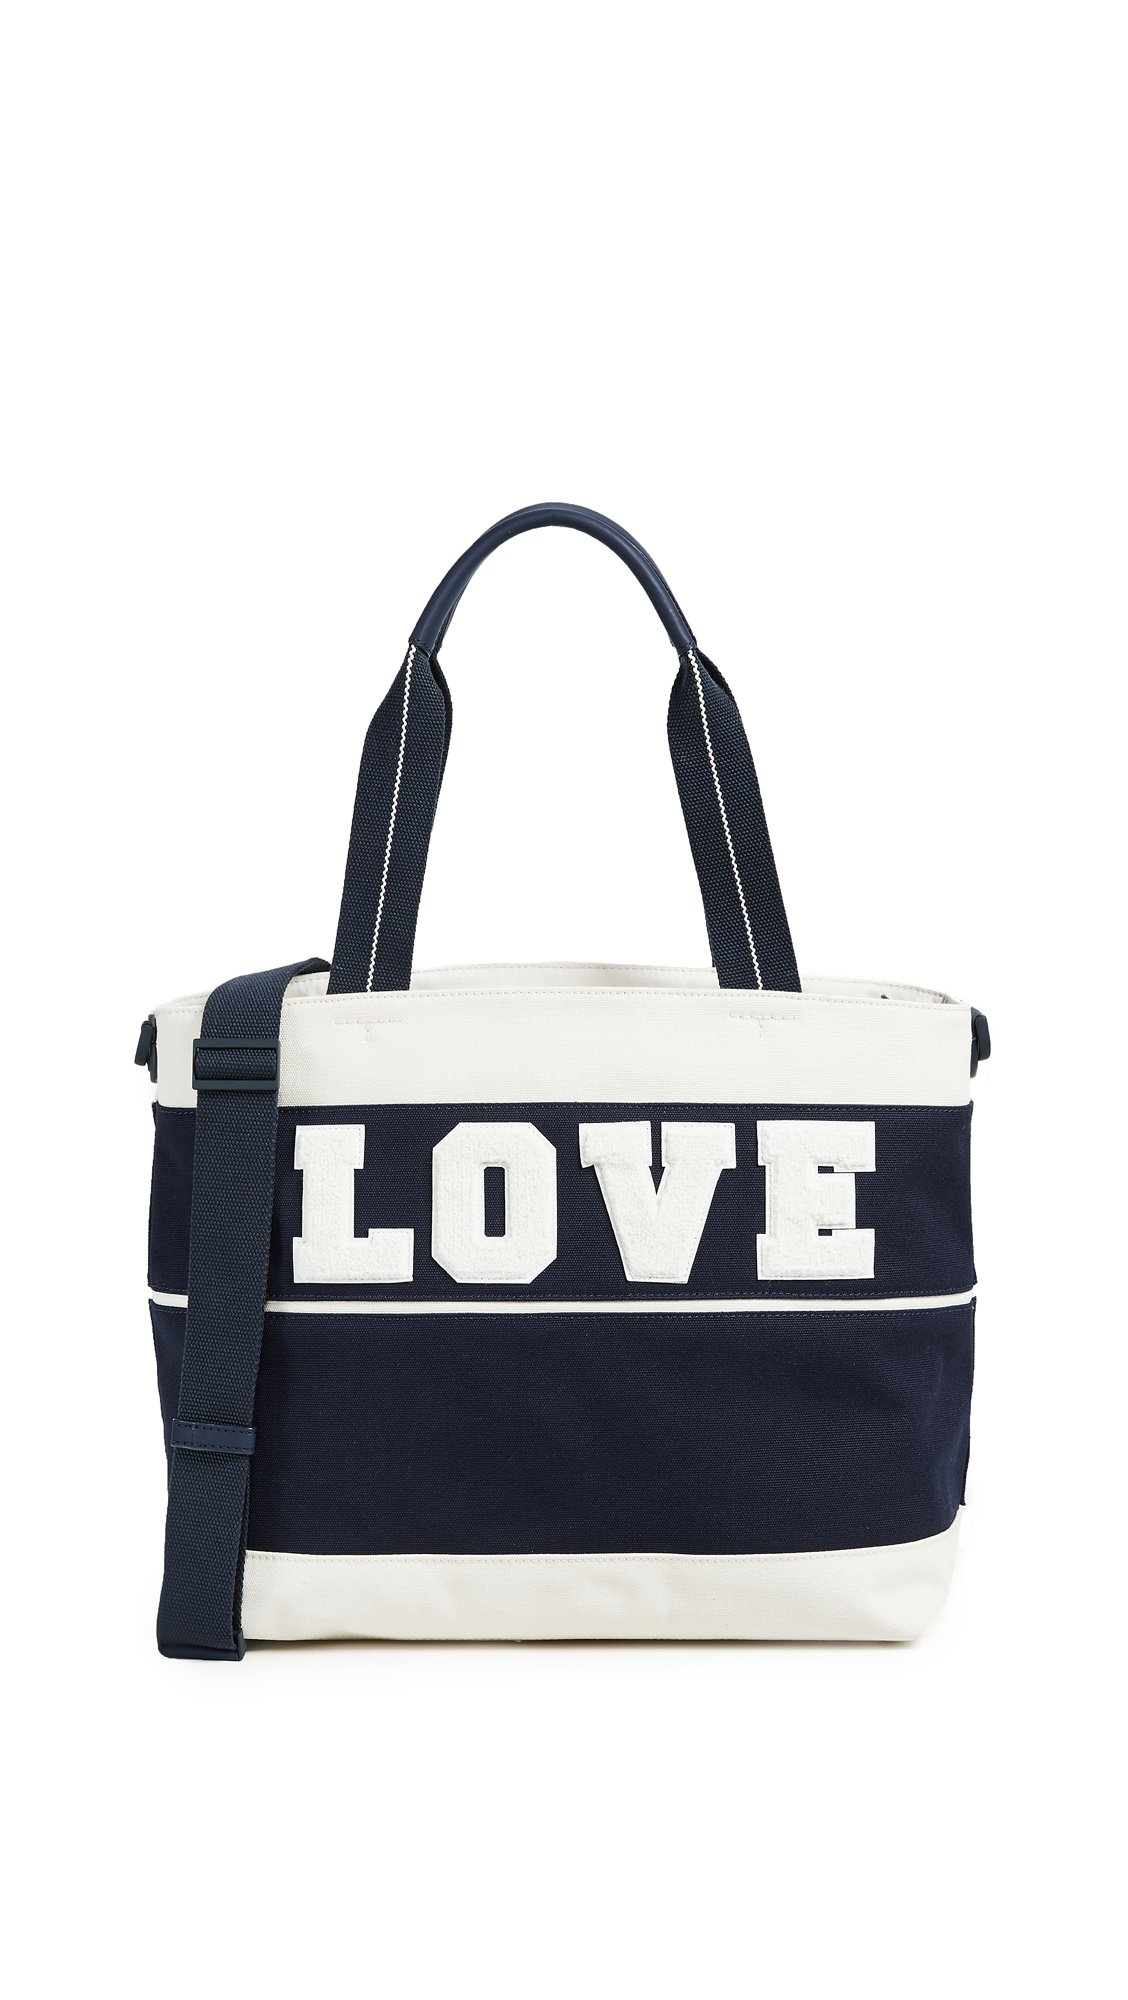 Tory Sport Women's Love Tote, Tory Navy/New Ivory, One Size